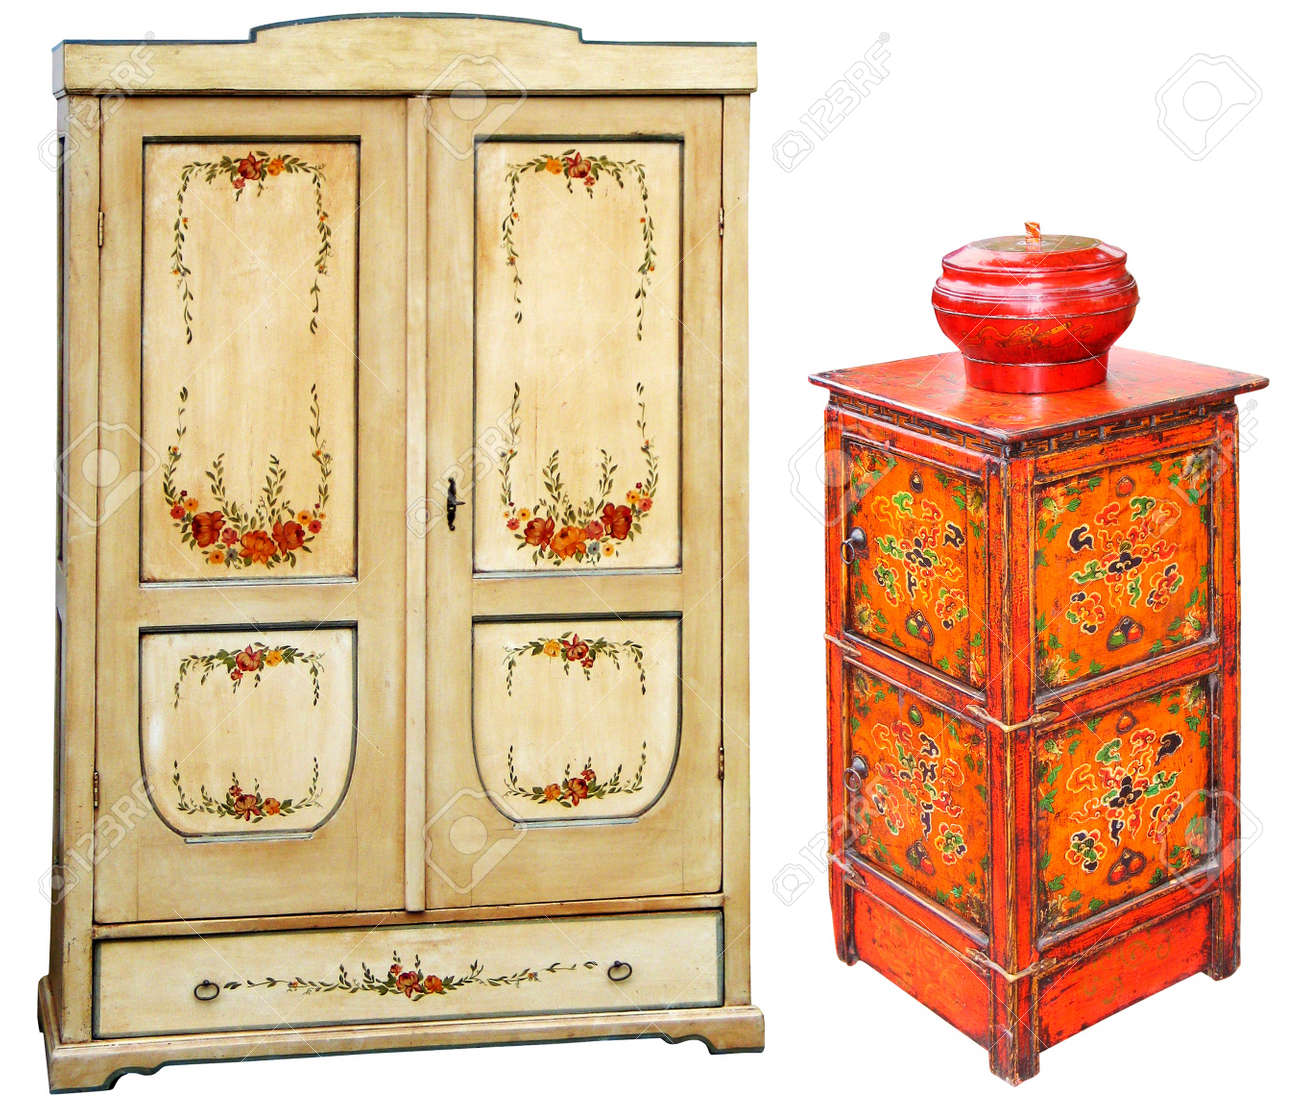 Antique Hand Painted Wooden Cabinets Stock Photo   13956084